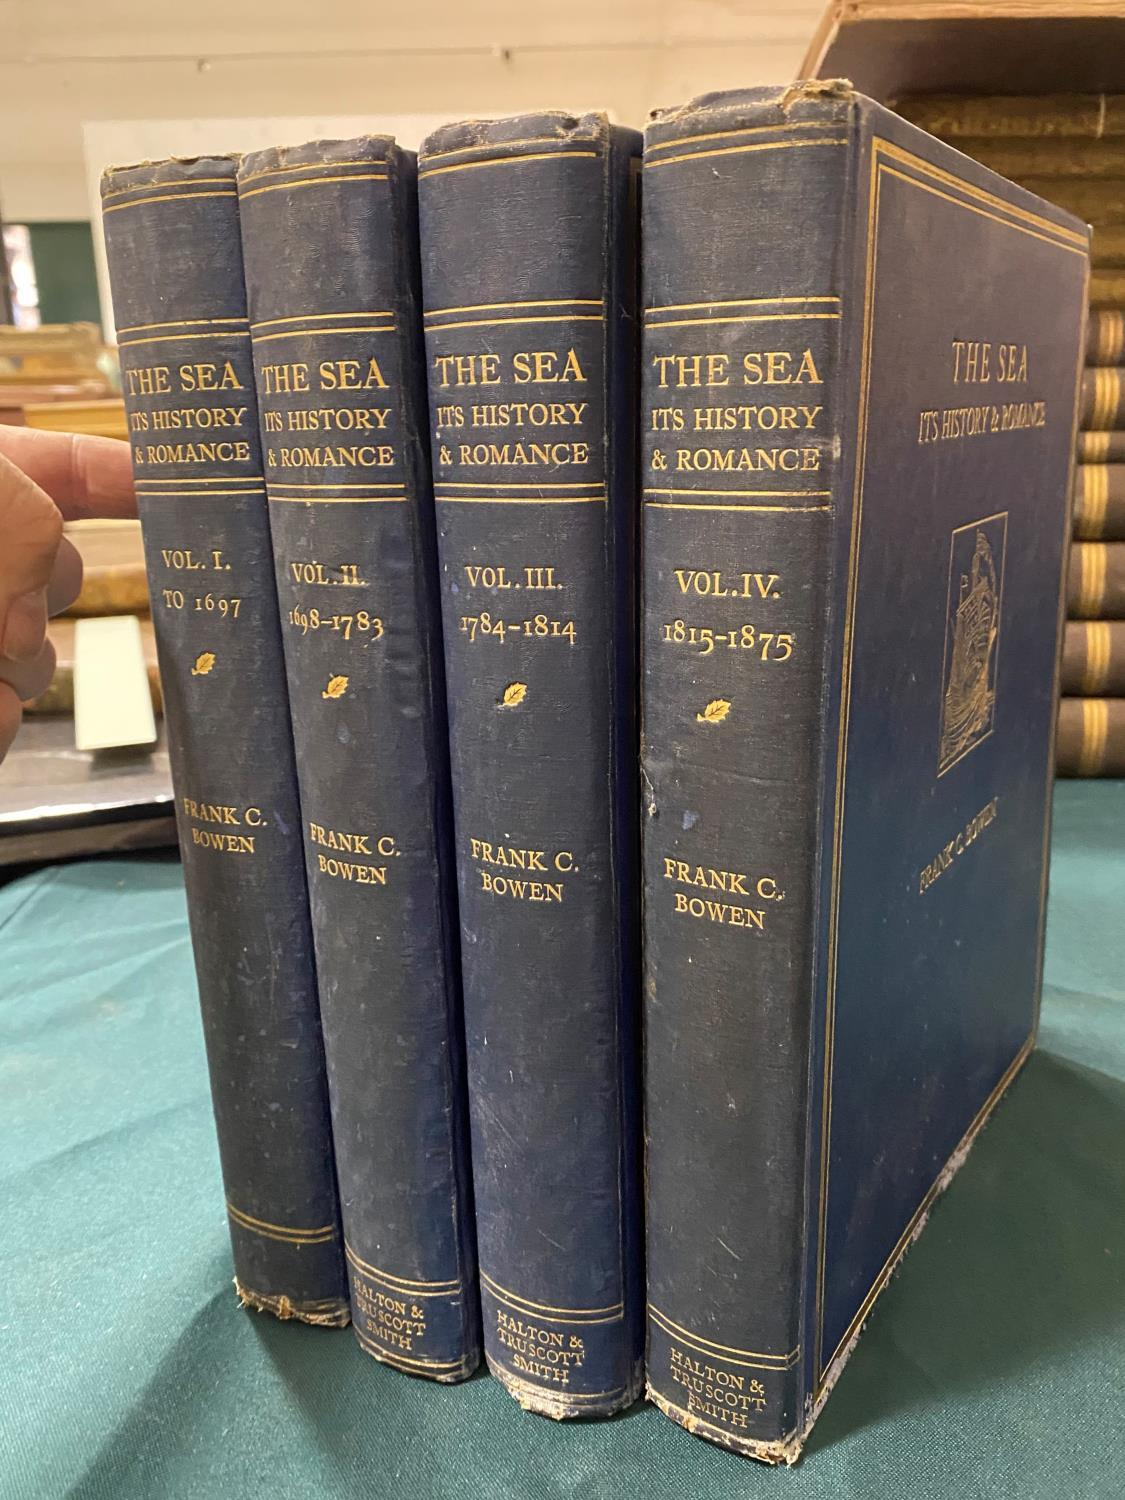 Bowen, Frank Charles. The Sea, Its History and Romance, 4 volumes, first edition, plates, some